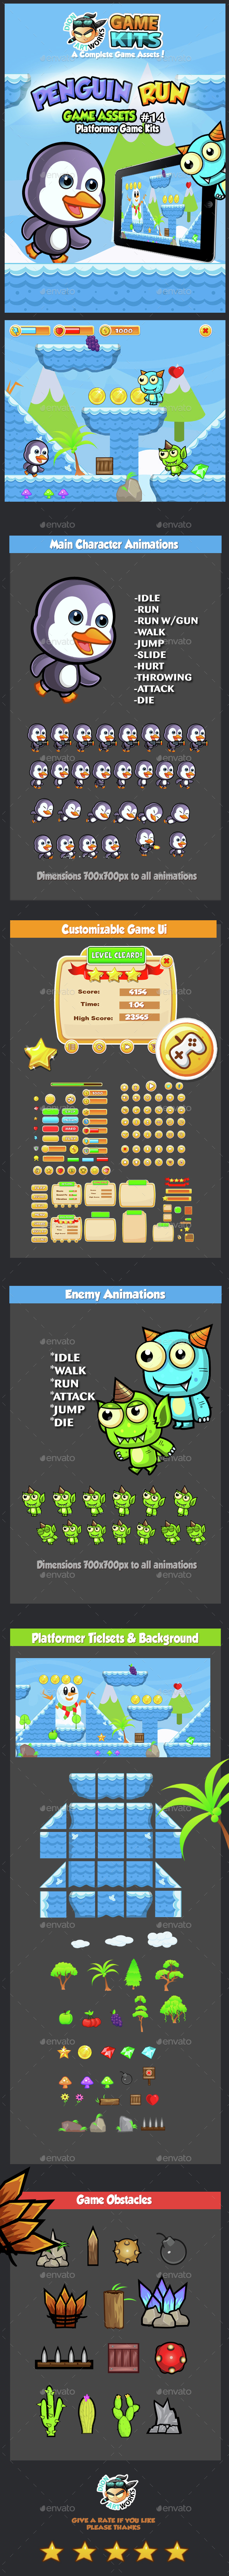 Penguin Run Platformer Game Assets 14 - Game Kits Game Assets